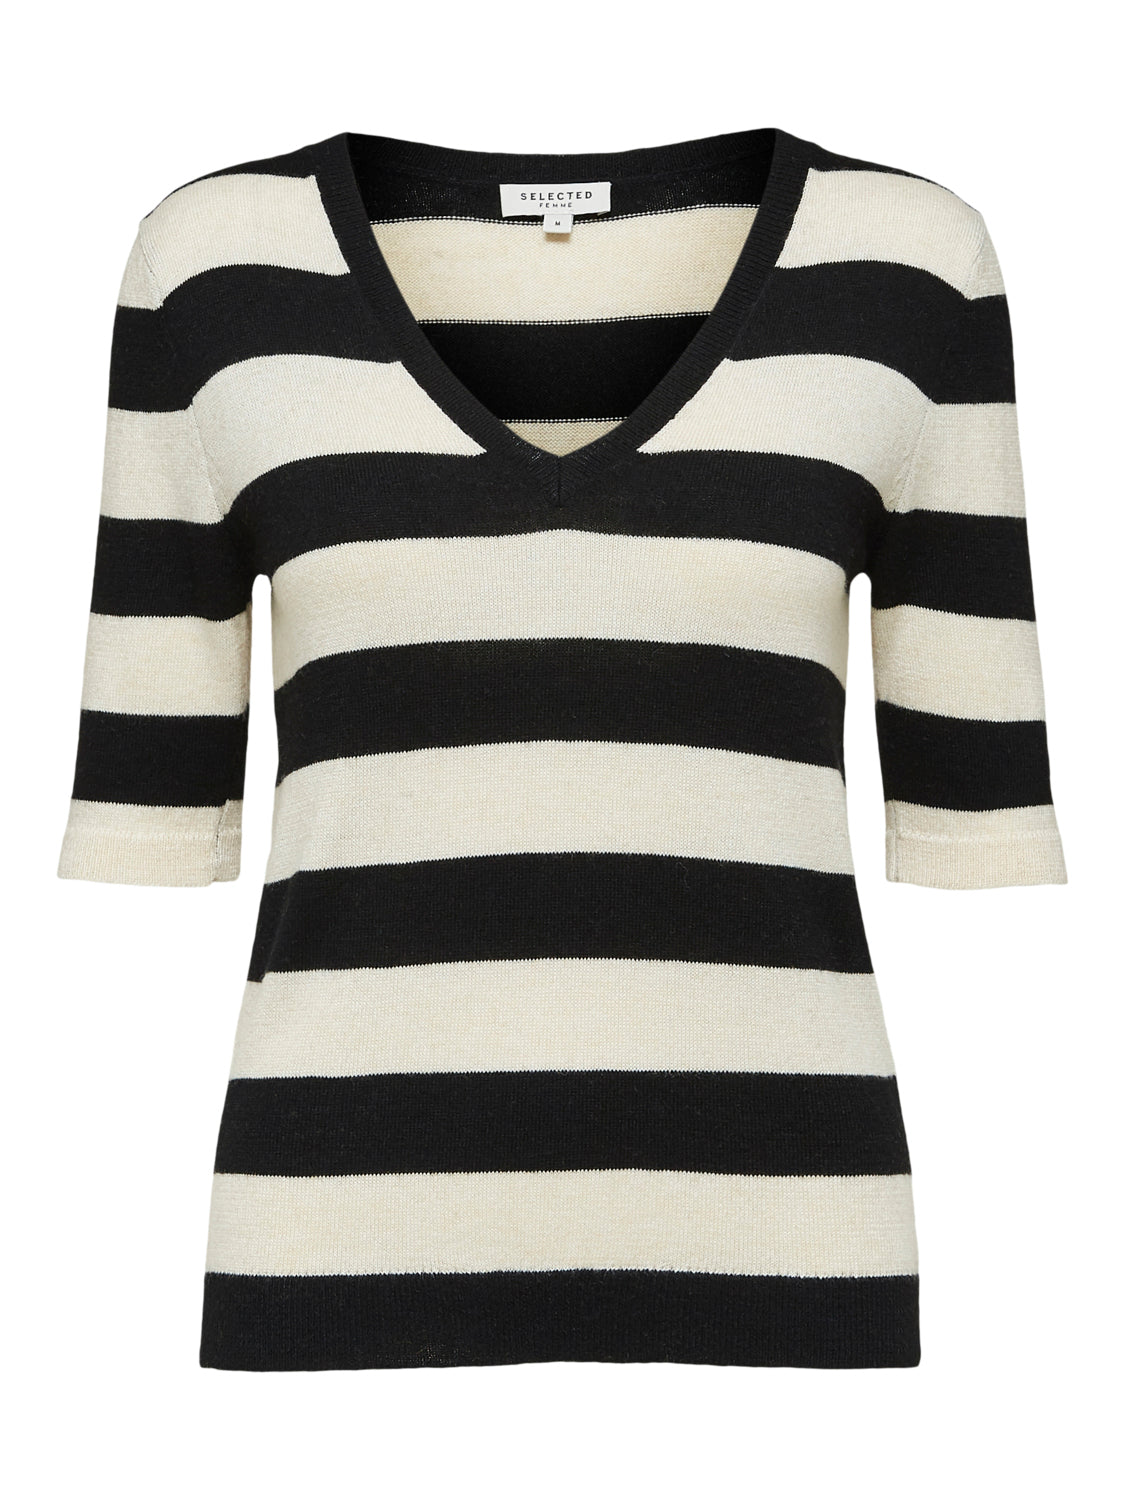 Peyton Knit Stripes Black/Birch